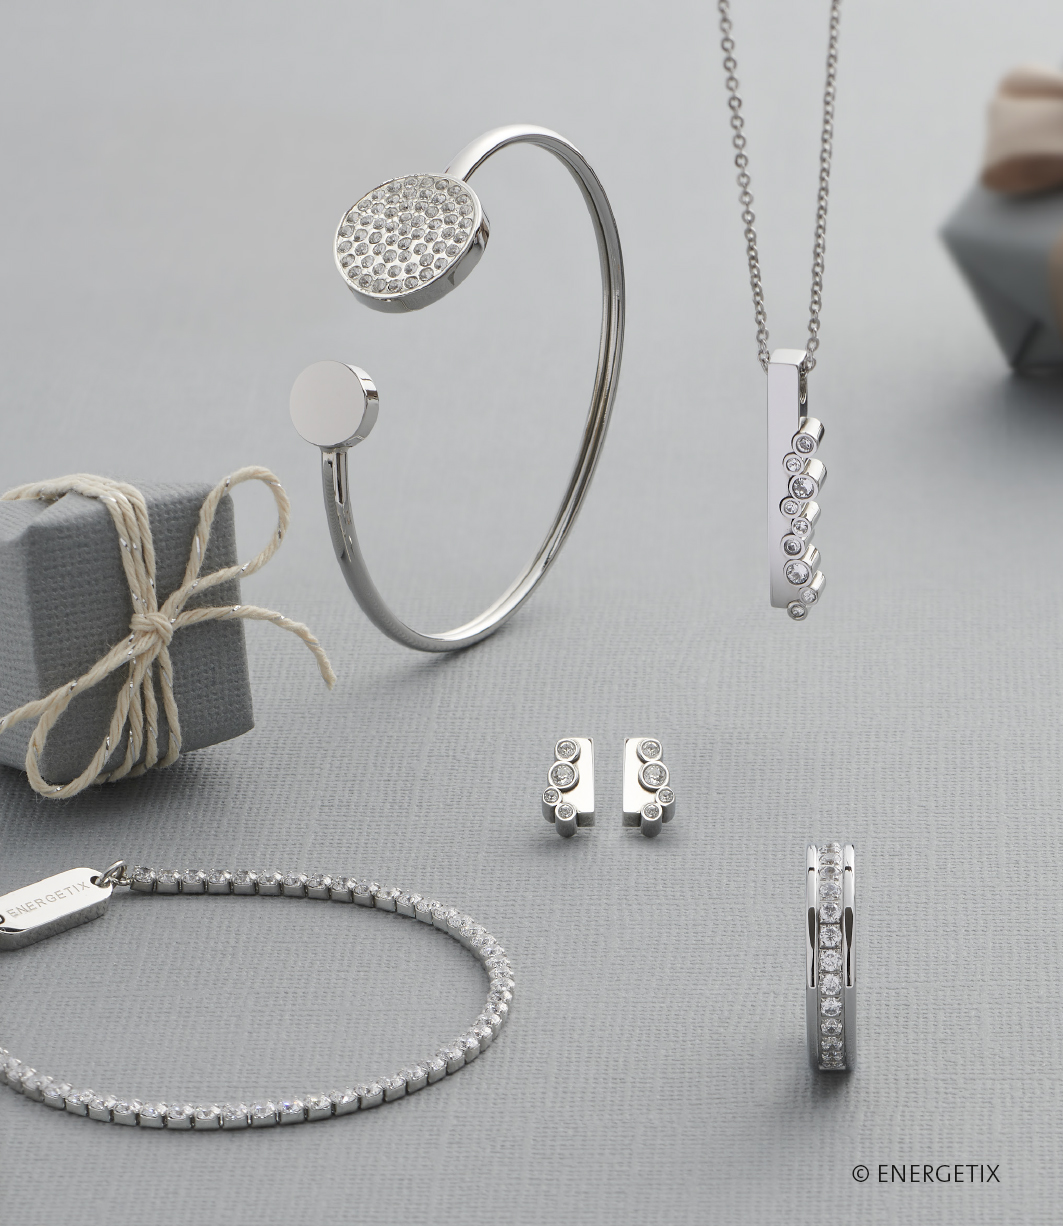 Selection of stainless steel magnetic jewellery on silver tablecloth. The magnetic bangle has two discs of varying sizes, one encrusted with crystals. A pendant adorned with crystals hangs from a chain, over matching ear studs. A magnetic bracelet with crystal links lays on the table next to a steel ring lined in the centre with crystals.